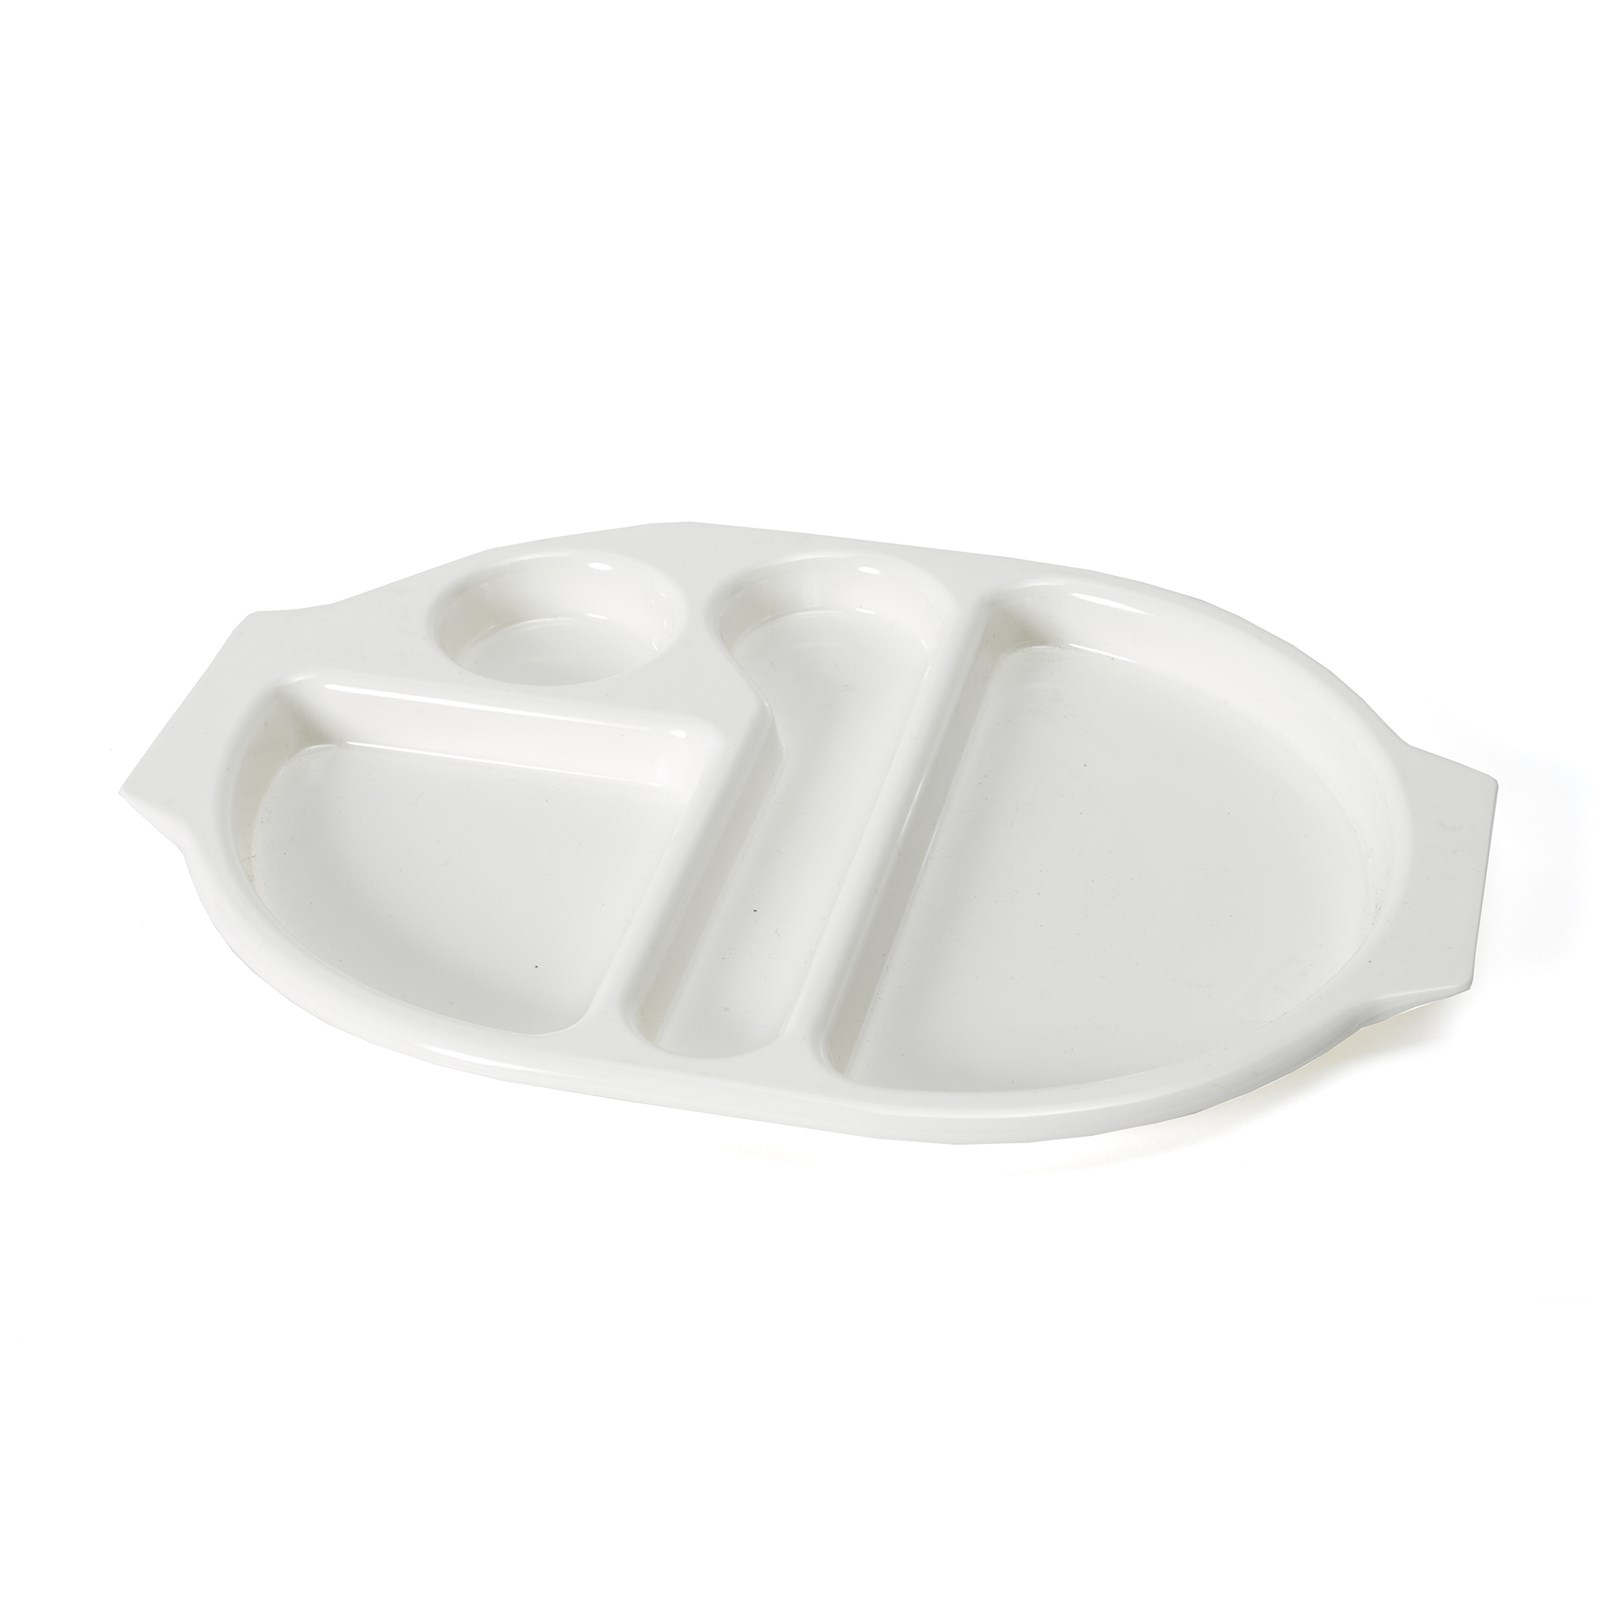 Meal Trays - Large - White